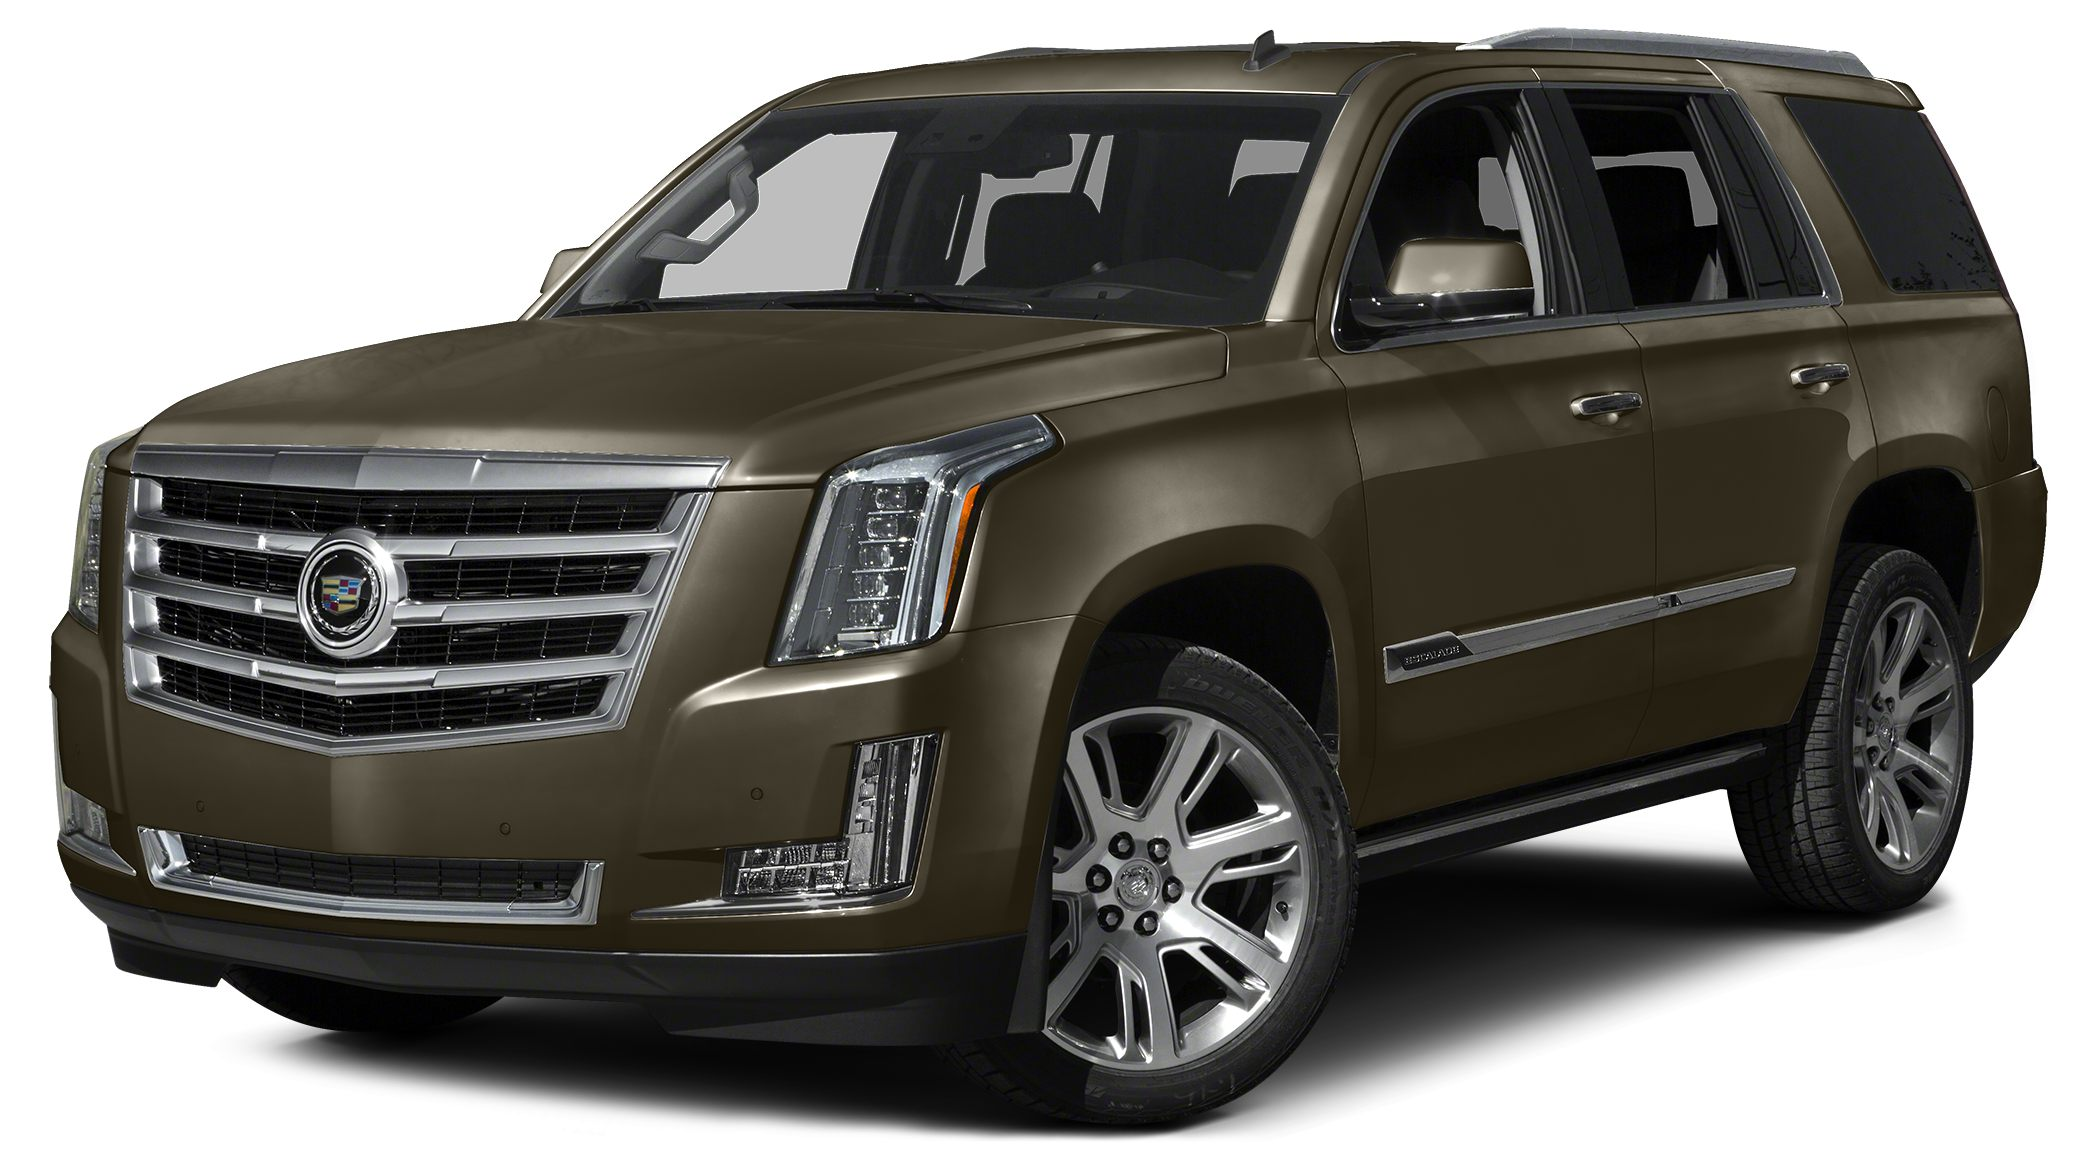 2015 Cadillac Escalade Luxury The well-recognized Escalade has been among the Kings of the SUV fam